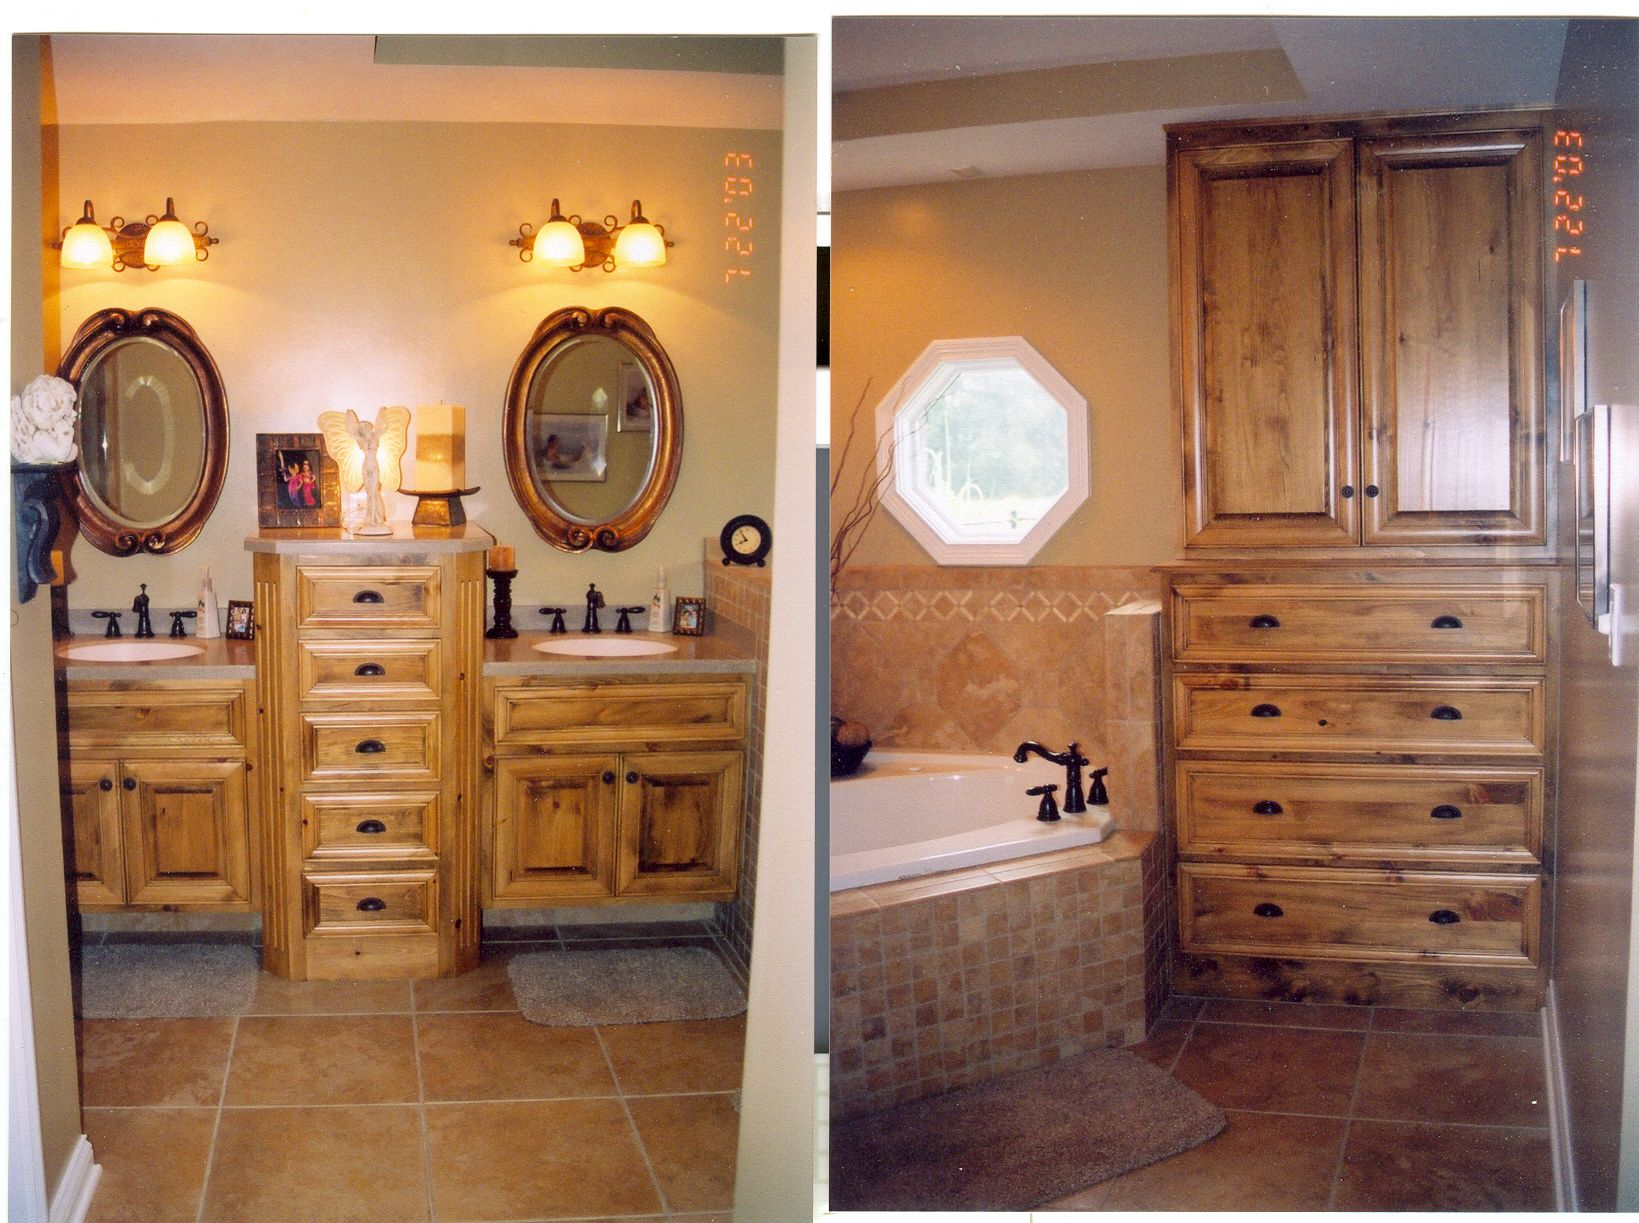 Knotty Pine bath to match master bedroom furniture